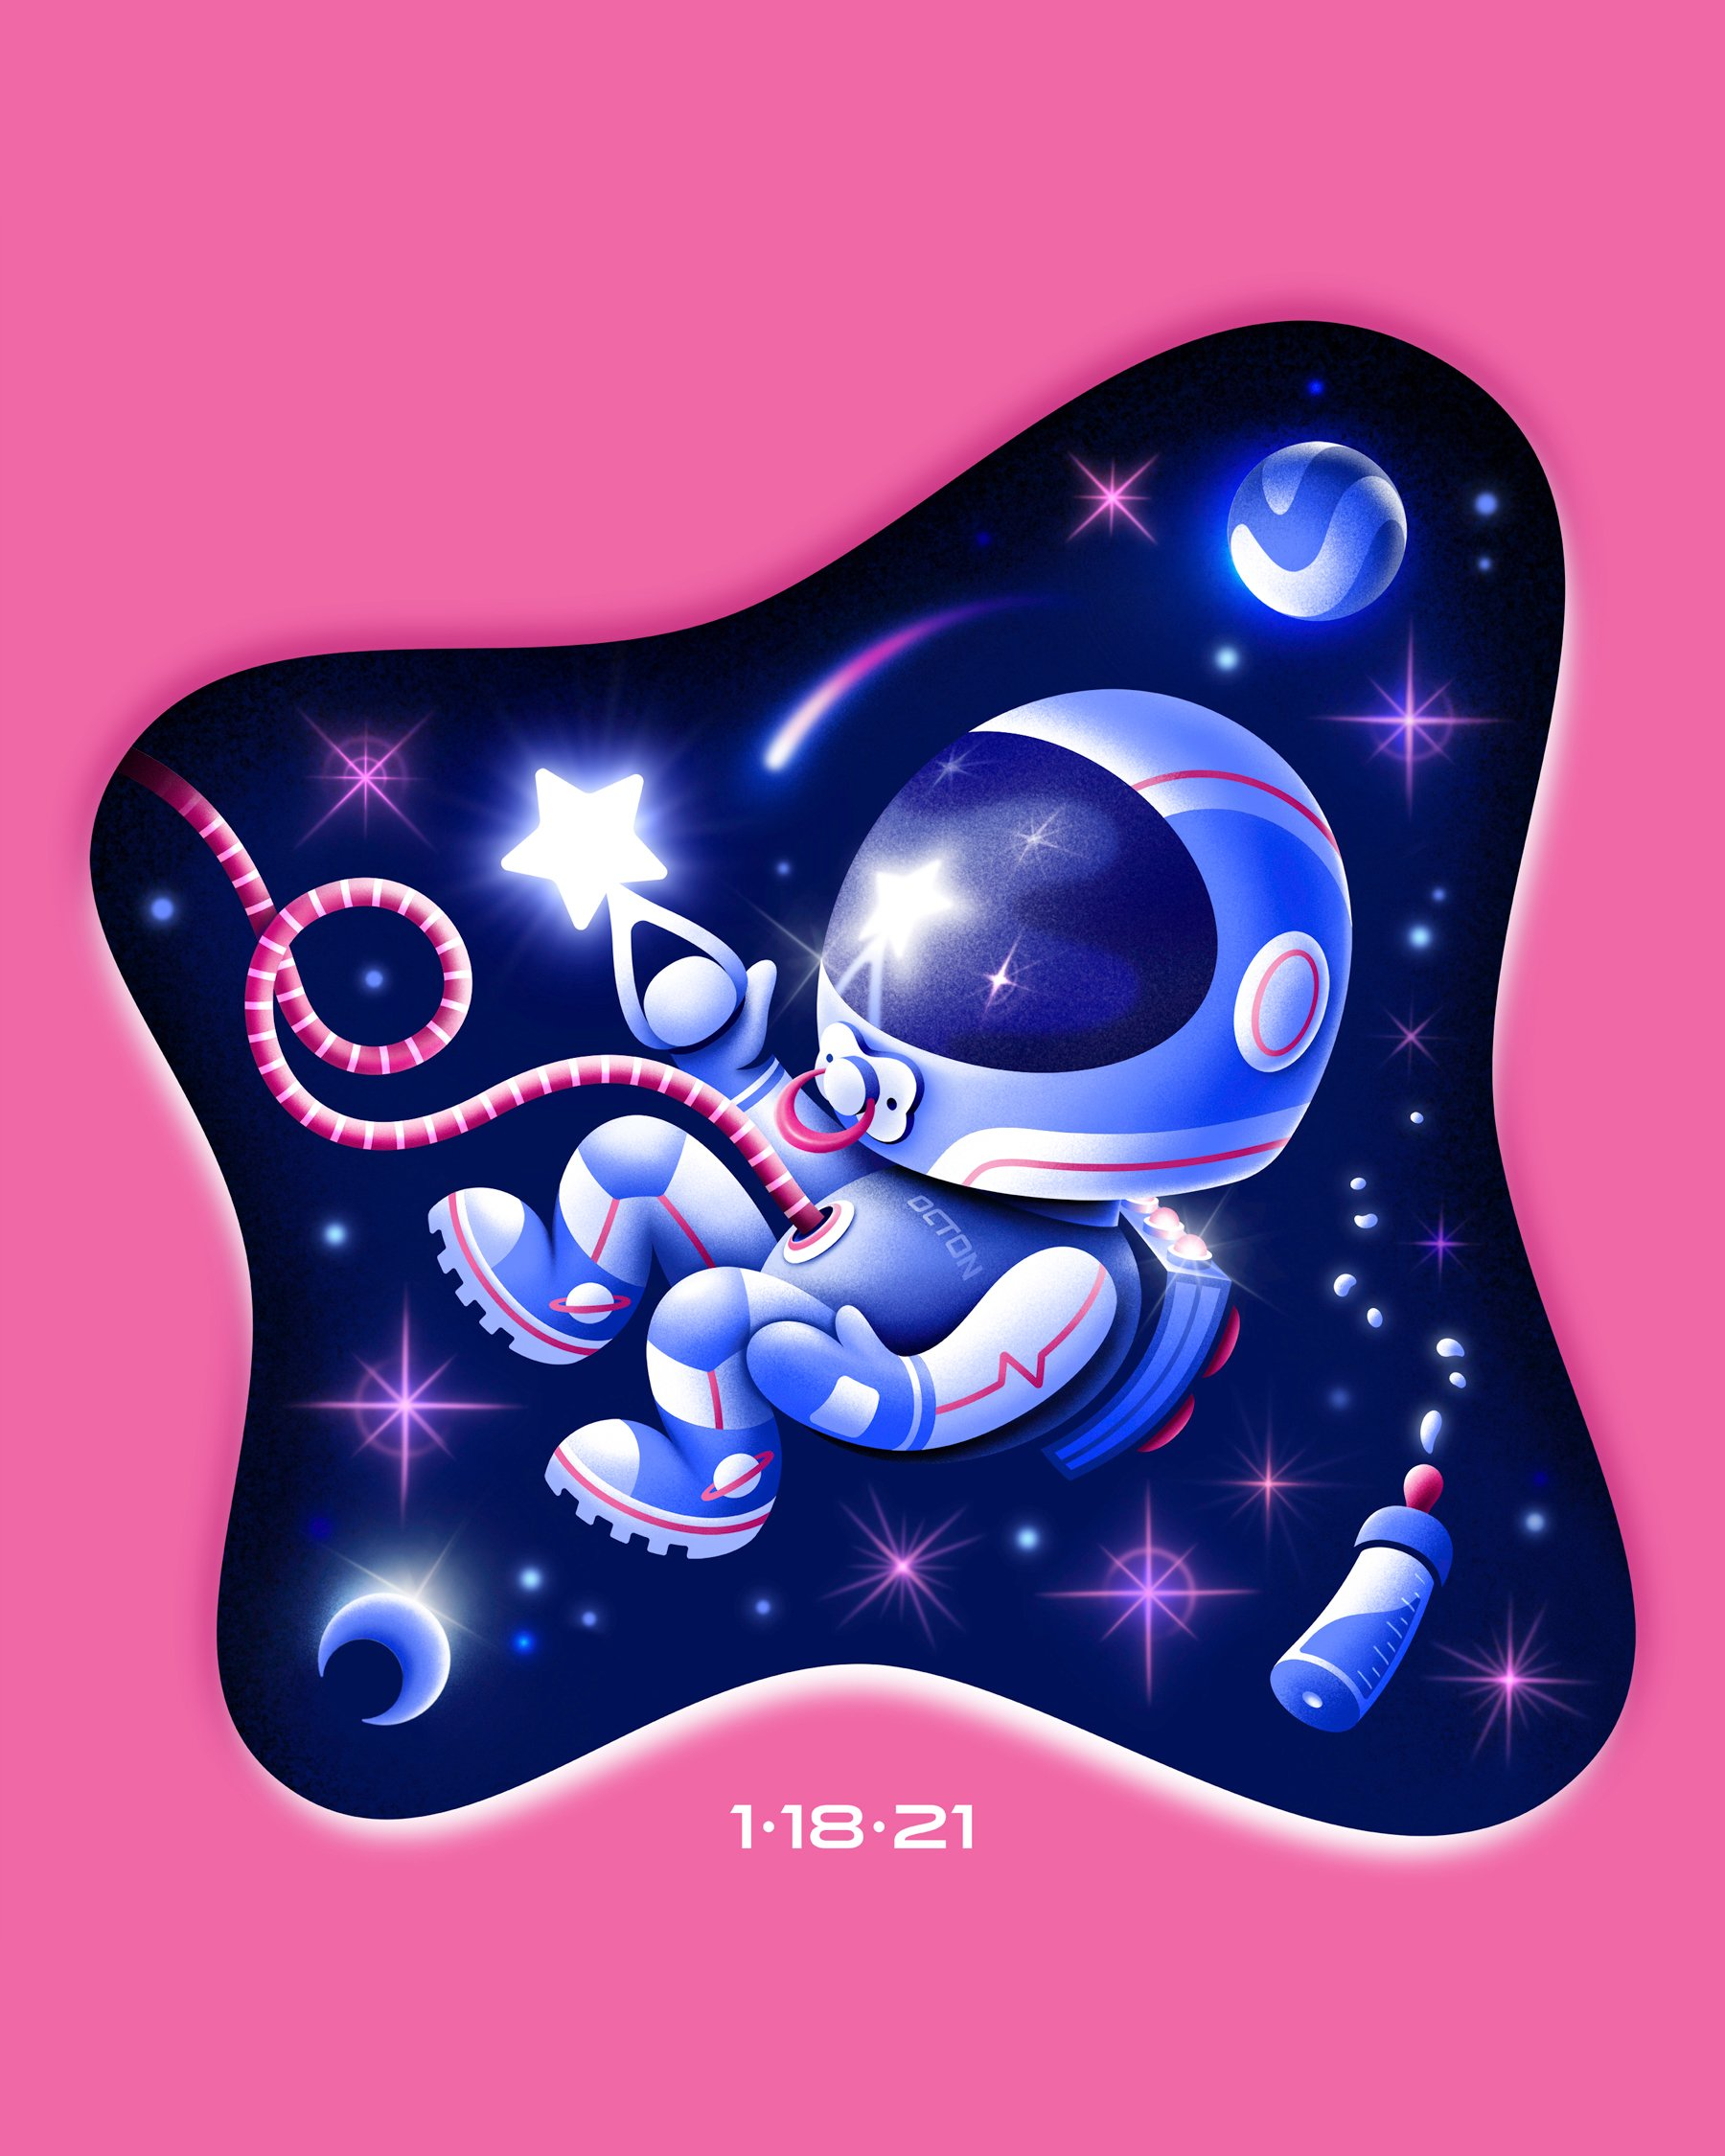 An illustration of a baby astronaut floating in space, holding a star rattle.